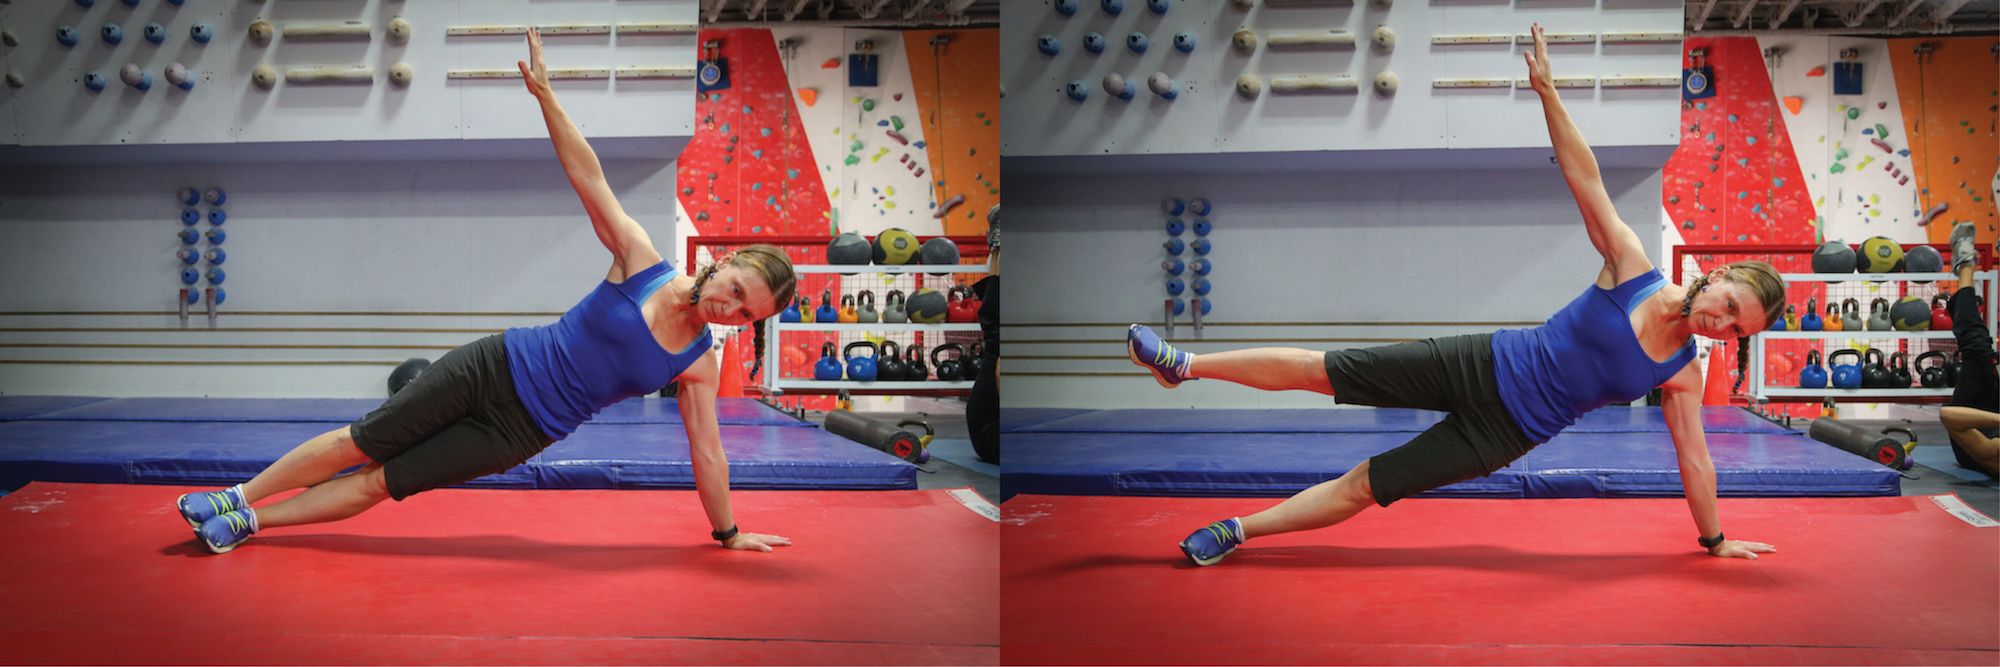 Side Plank, Side Plank with one leg raised